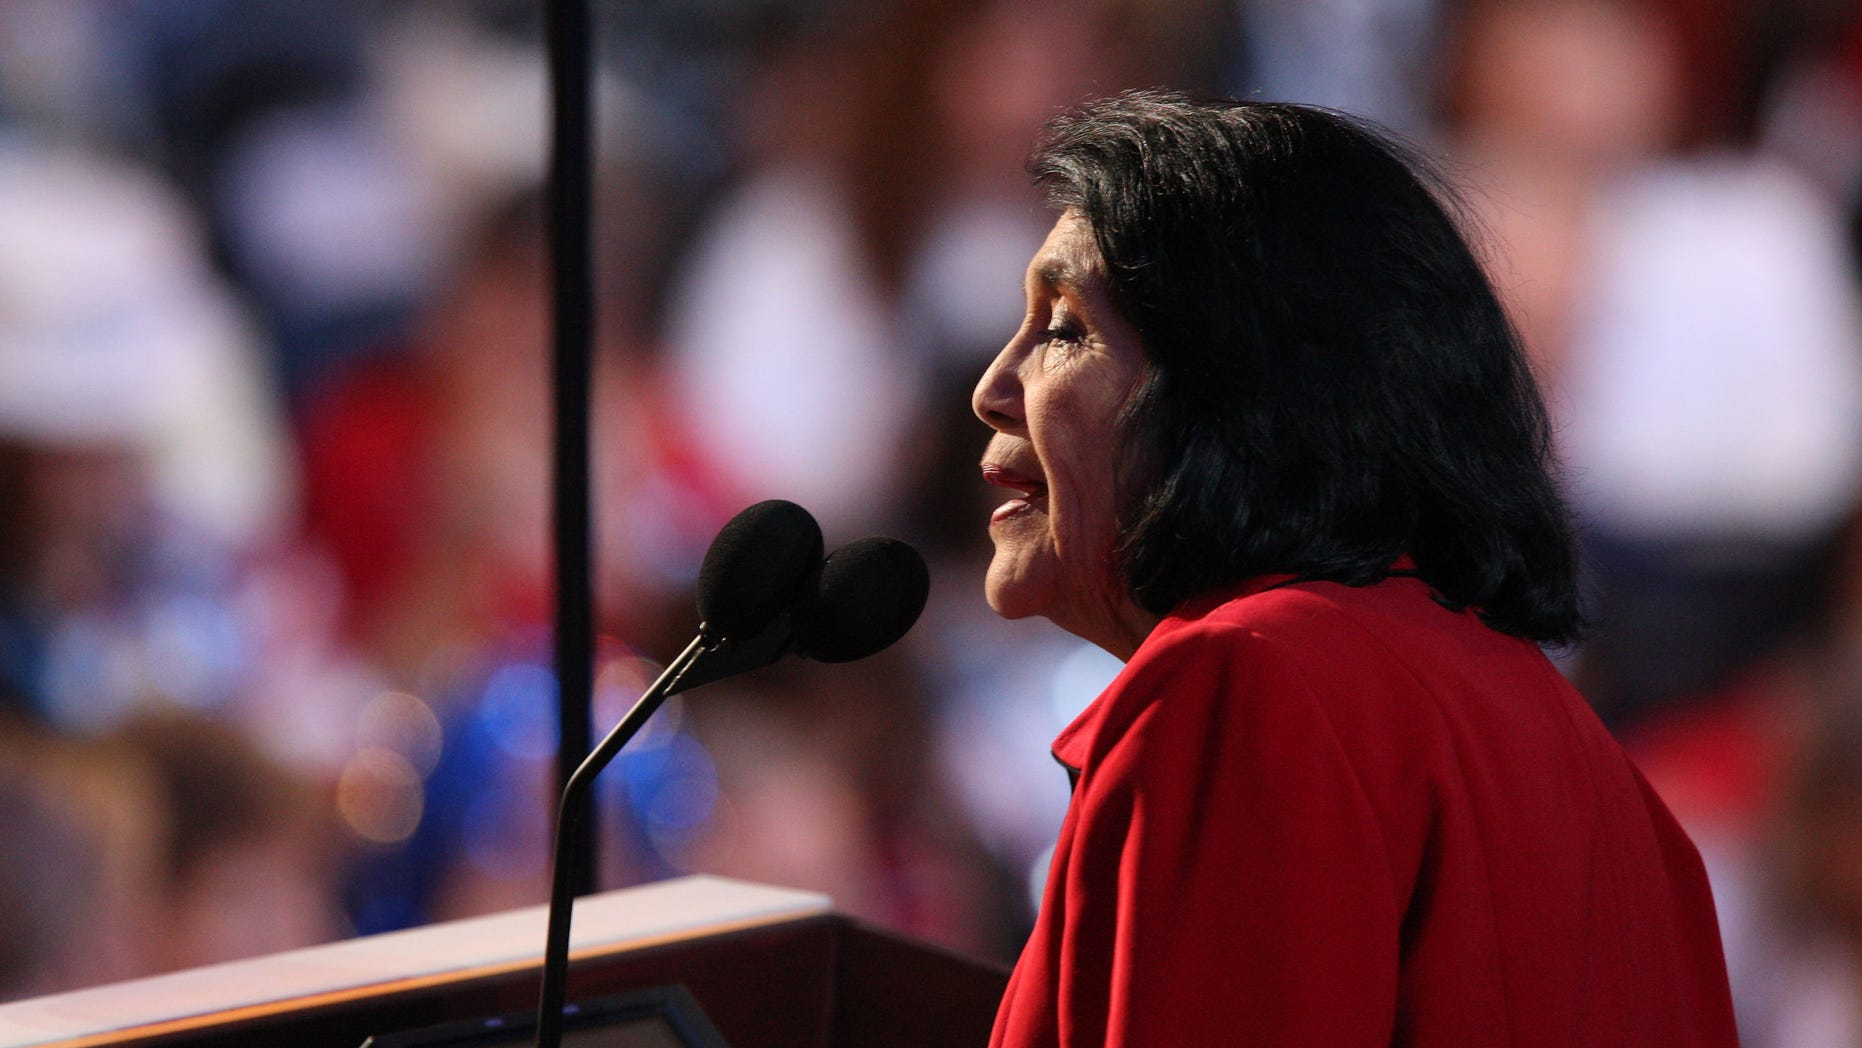 DENVER - AUGUST 27:  Dolores Huerta, President of the Dolores Huerta foundation, nominates U.S. Sen. Hillary Clinton for U.S. Presidentduring day three of the Democratic National Convention (DNC) at the Pepsi Center August 27, 2008 in Denver, Colorado. U.S. Sen. Barack Obama (D-IL) will be officially be nominated as the Democratic candidate for U.S. president on the last day of the four-day convention.  (Photo by John Moore/Getty Images)